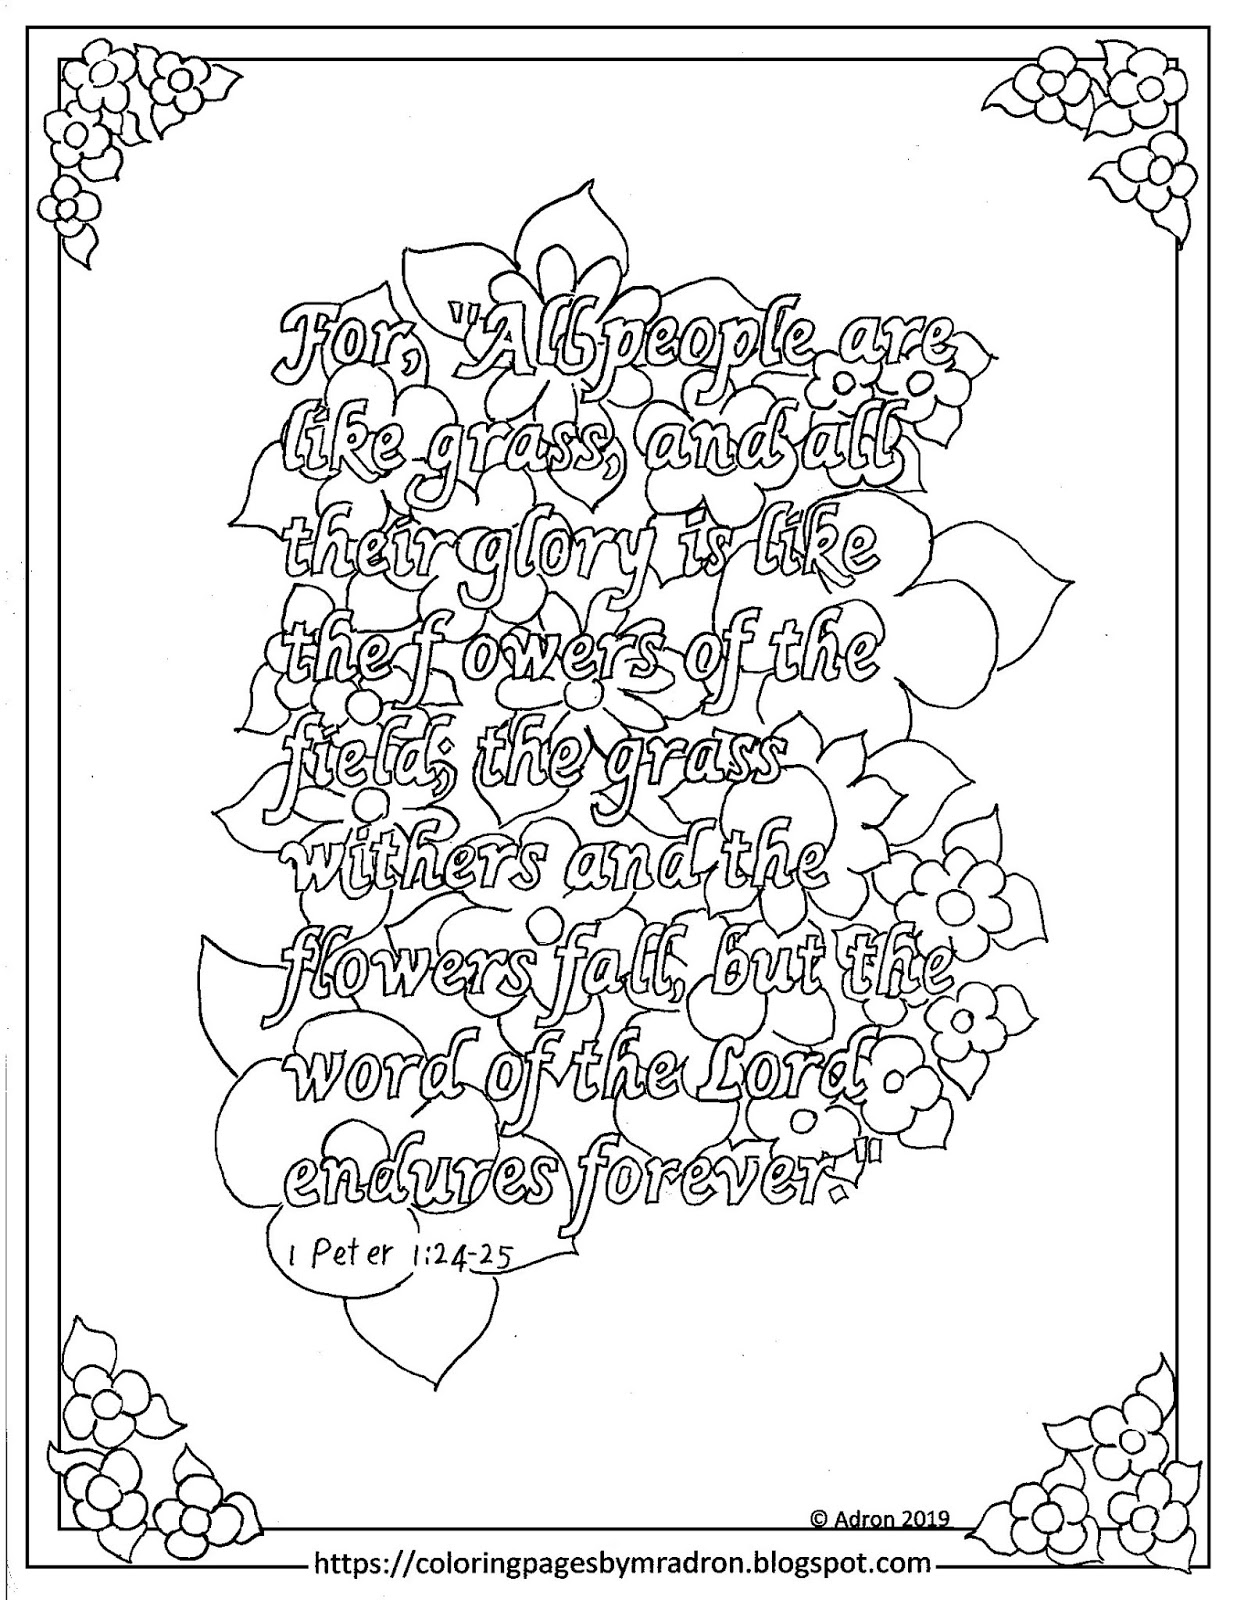 Coloring Pages for Kids by Mr. Adron: Free 1 Peter 1:24-25